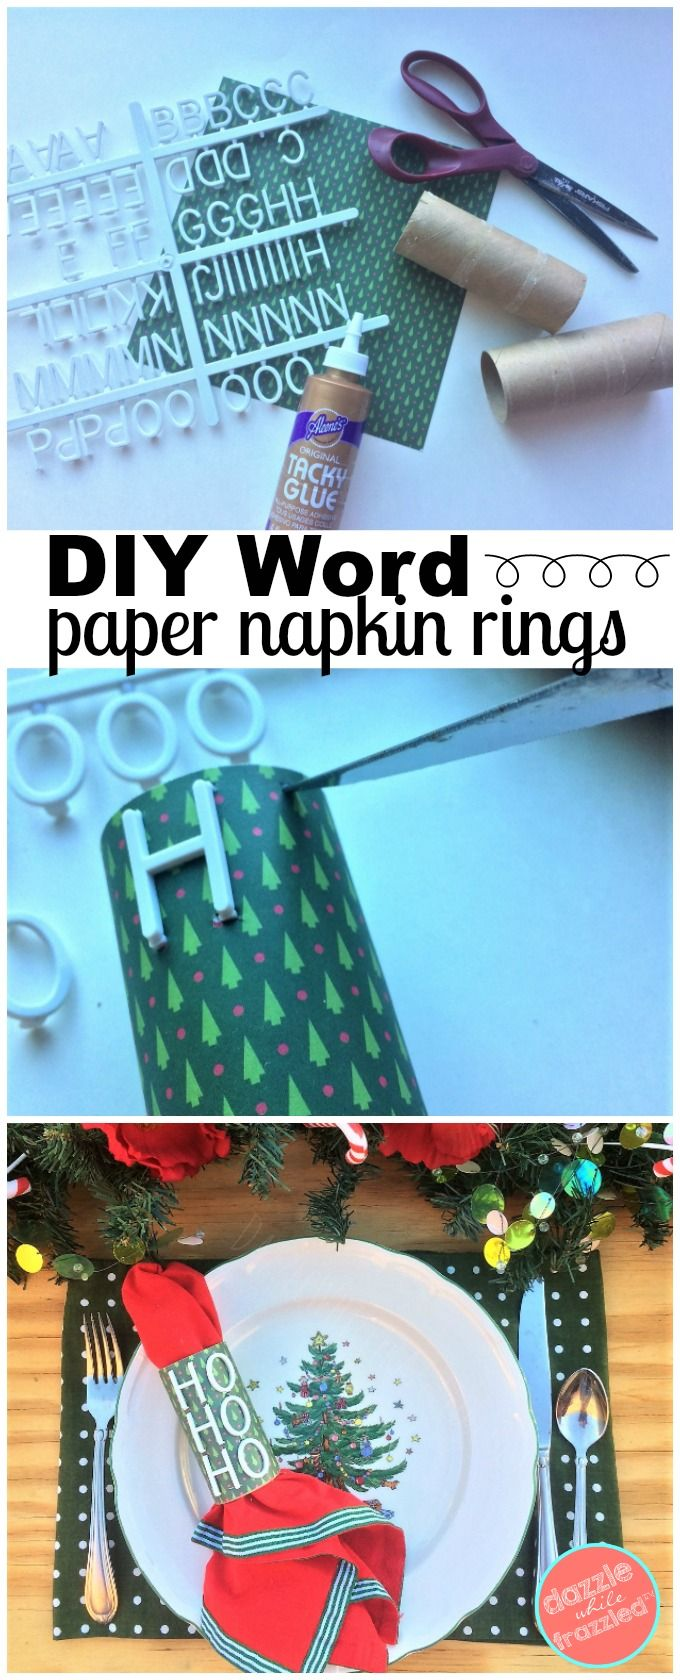 How to make DIY letterboard word napkin rings using letterboard letters, scrapbook paper and toilet paper tubes. Fun message board paper napkin rings. via @https://www.pinterest.com/dazzlefrazzled/ #diytabledecor #messageboard #napkinrings